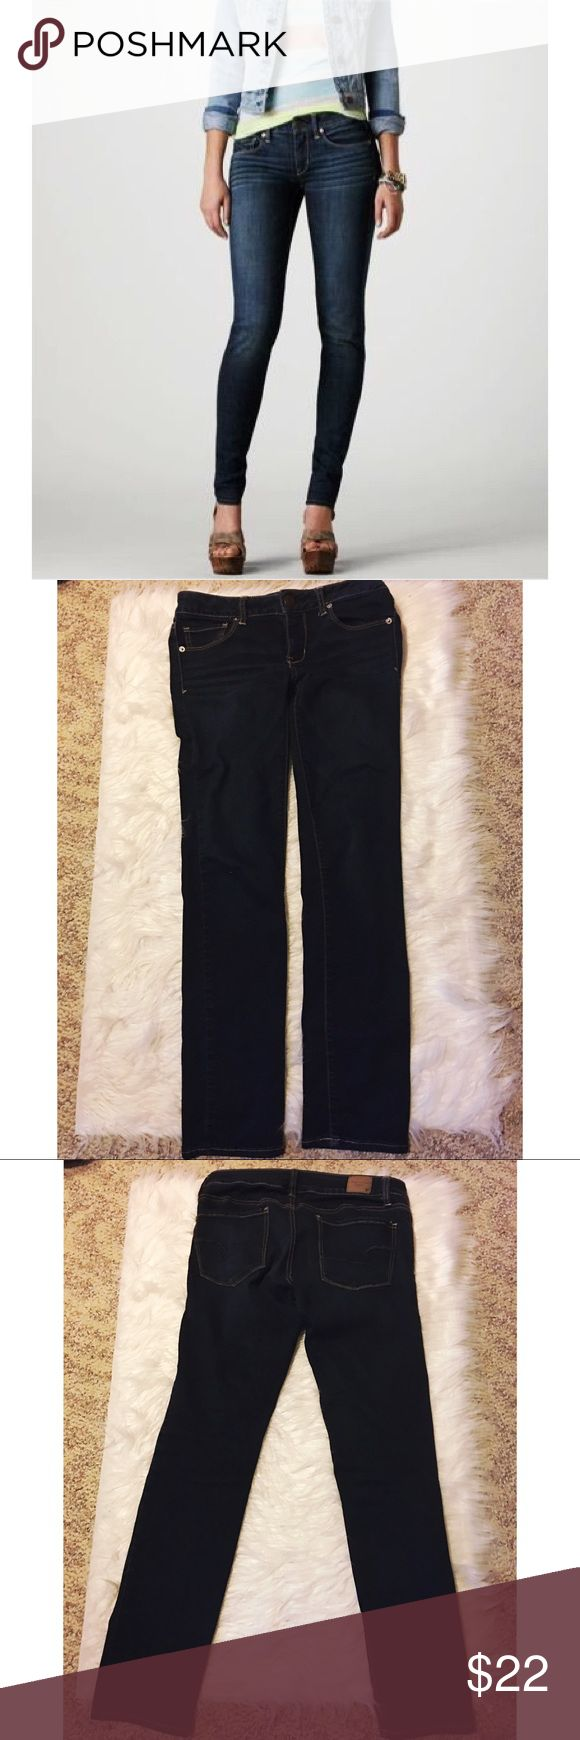 """American Eagle Super Stretch Skinny Jean American Eagle Super Stretch Skinny Jean The ultimate """"cool girl"""" fit made for every day. Super Stretch 